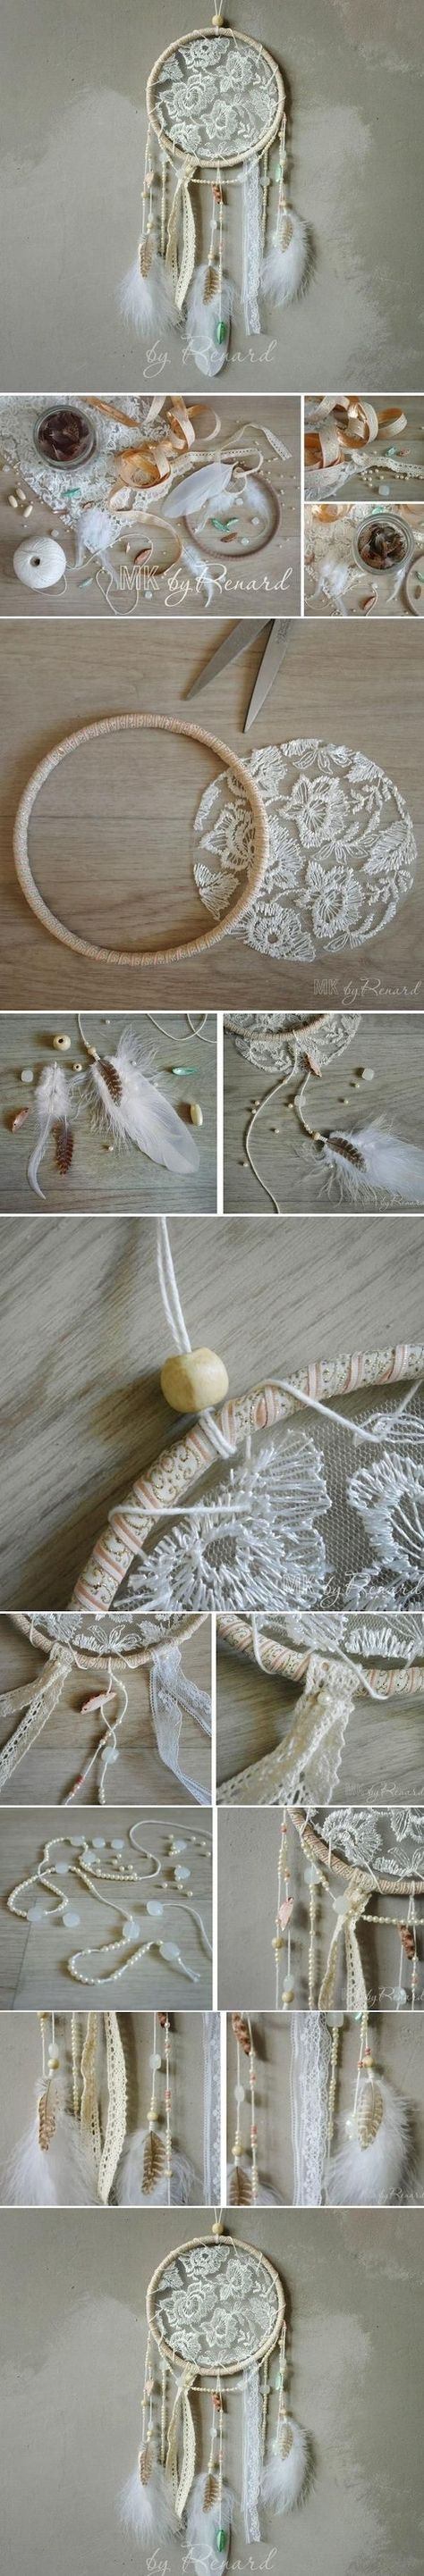 best 25 diy crafts home ideas on pinterest - Crafting Ideas For Home Decor